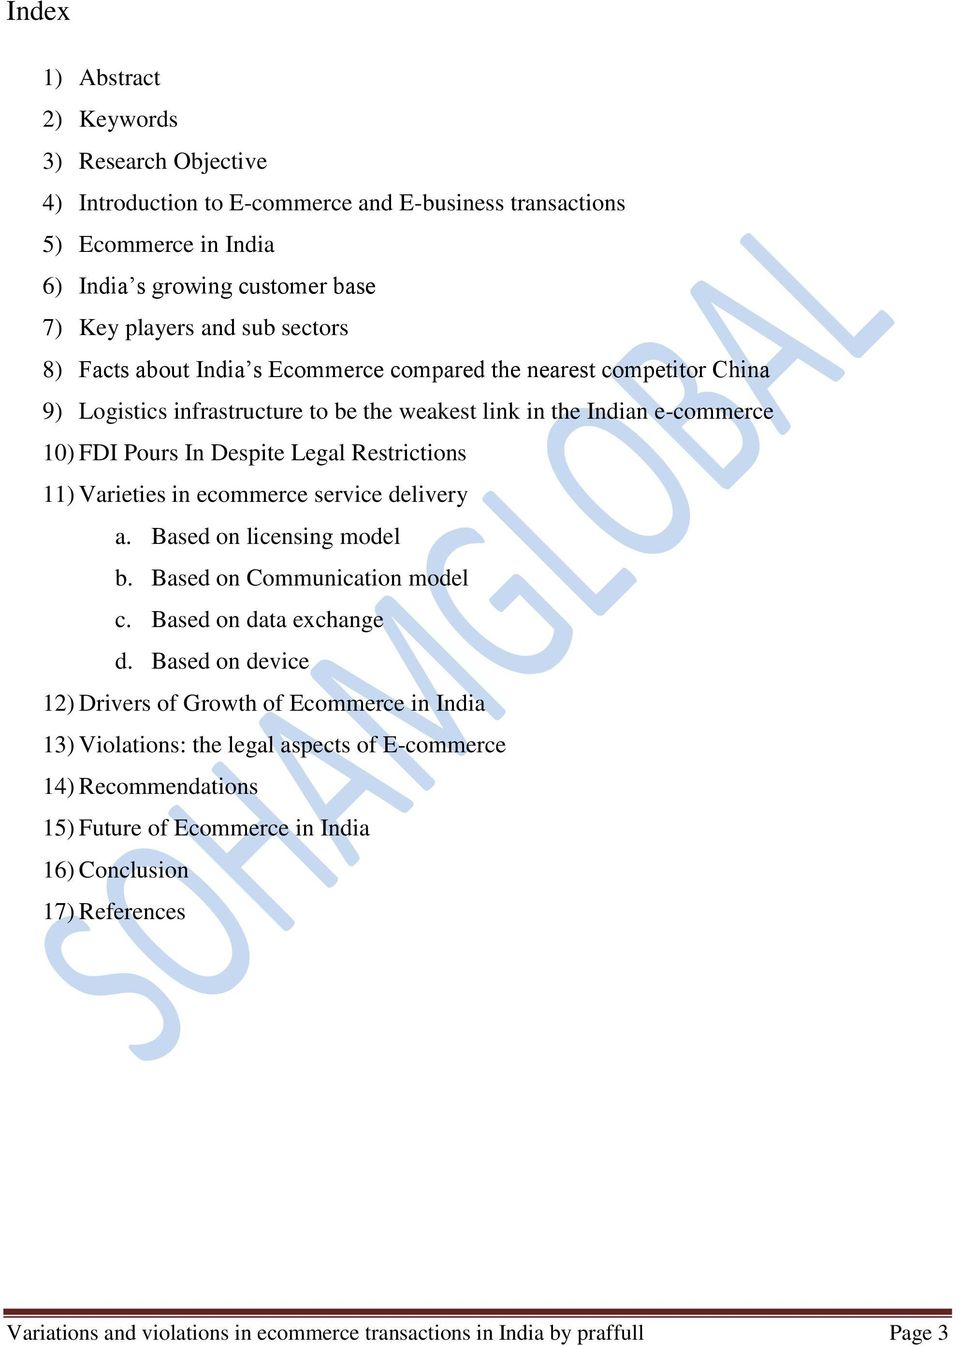 Variations and violations in ecommerce transactions in India